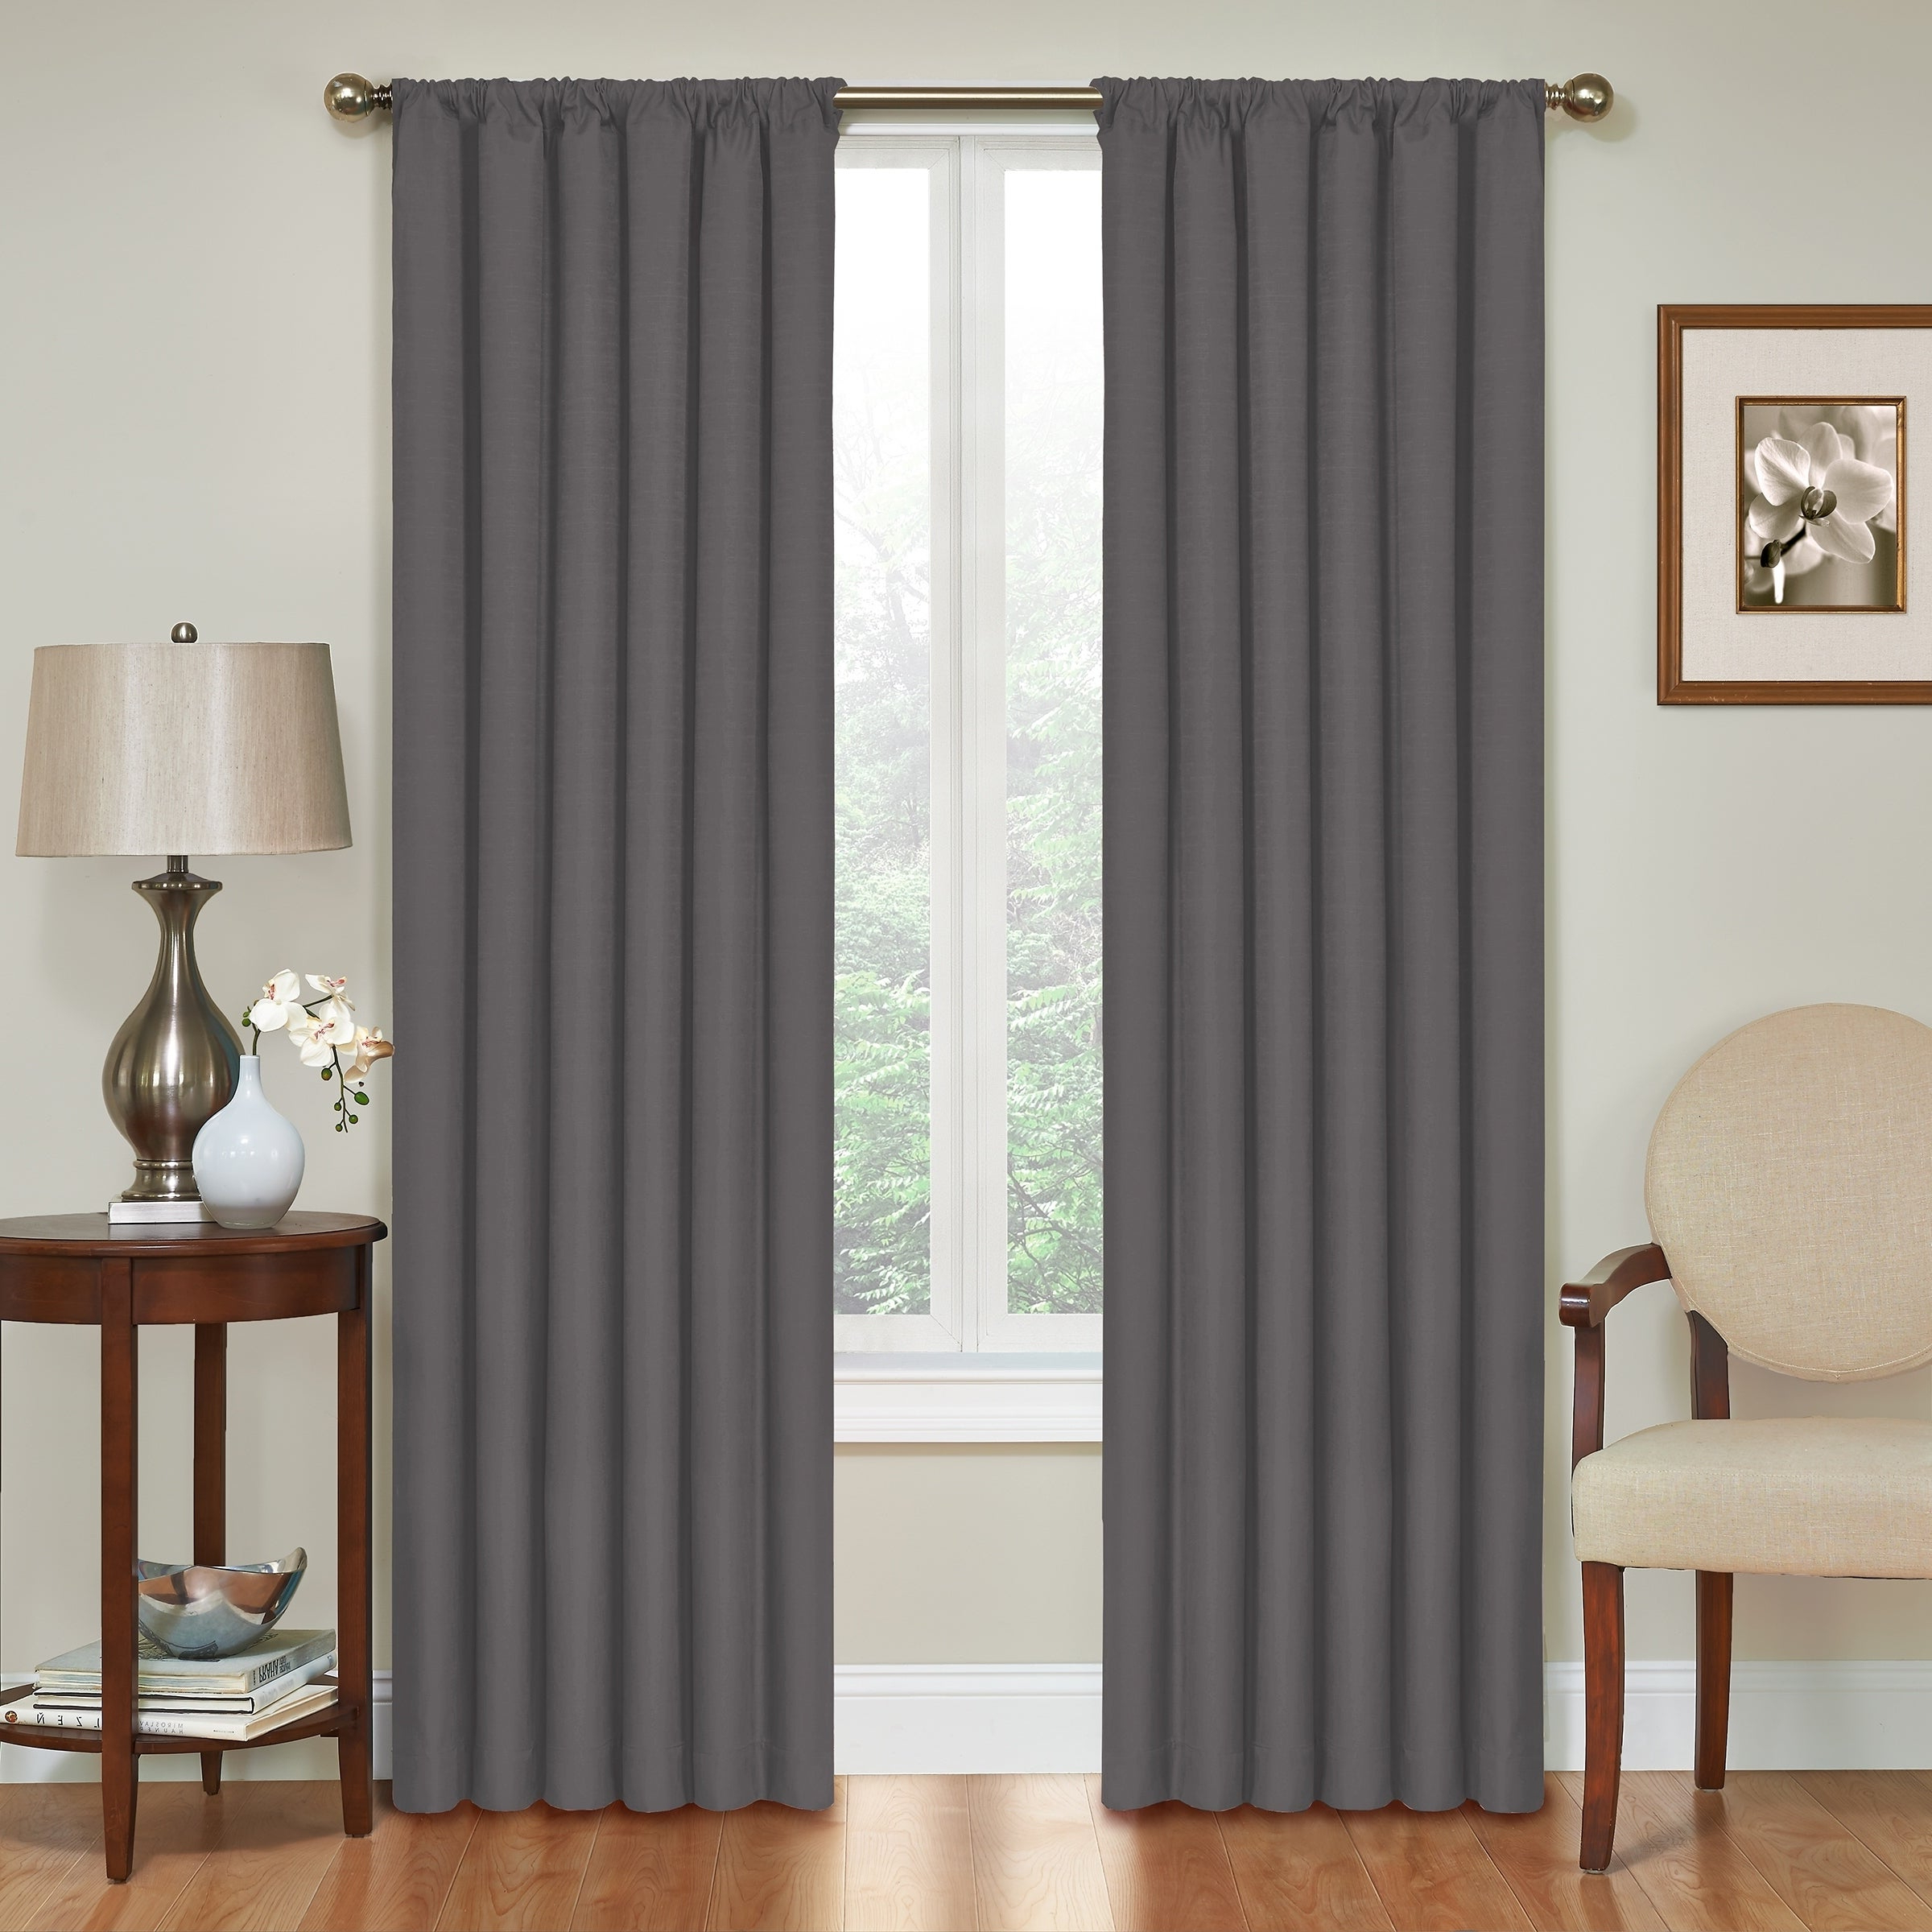 Eclipse Kendall Blackout Window Curtain Panels Pertaining To Most Up To Date Eclipse Kendall Blackout Window Curtain Panel (Gallery 1 of 20)